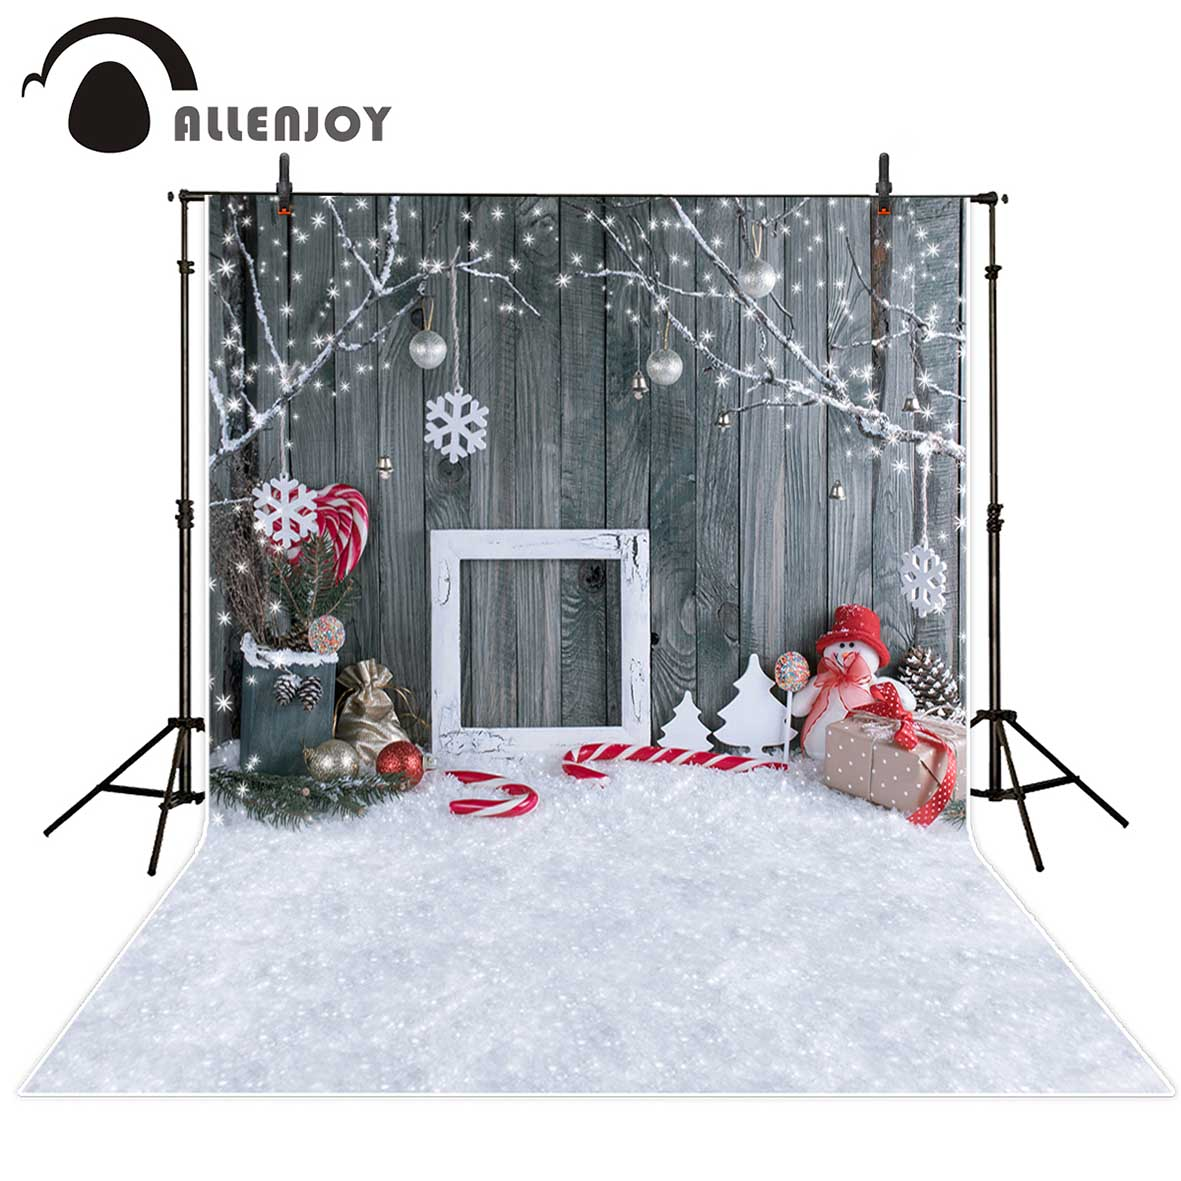 Allenjoy photographic background Christmas snowman gray woodwall snowflake backdrop newborn photobooth vinyl photographic allenjoy backdrop background wonderland